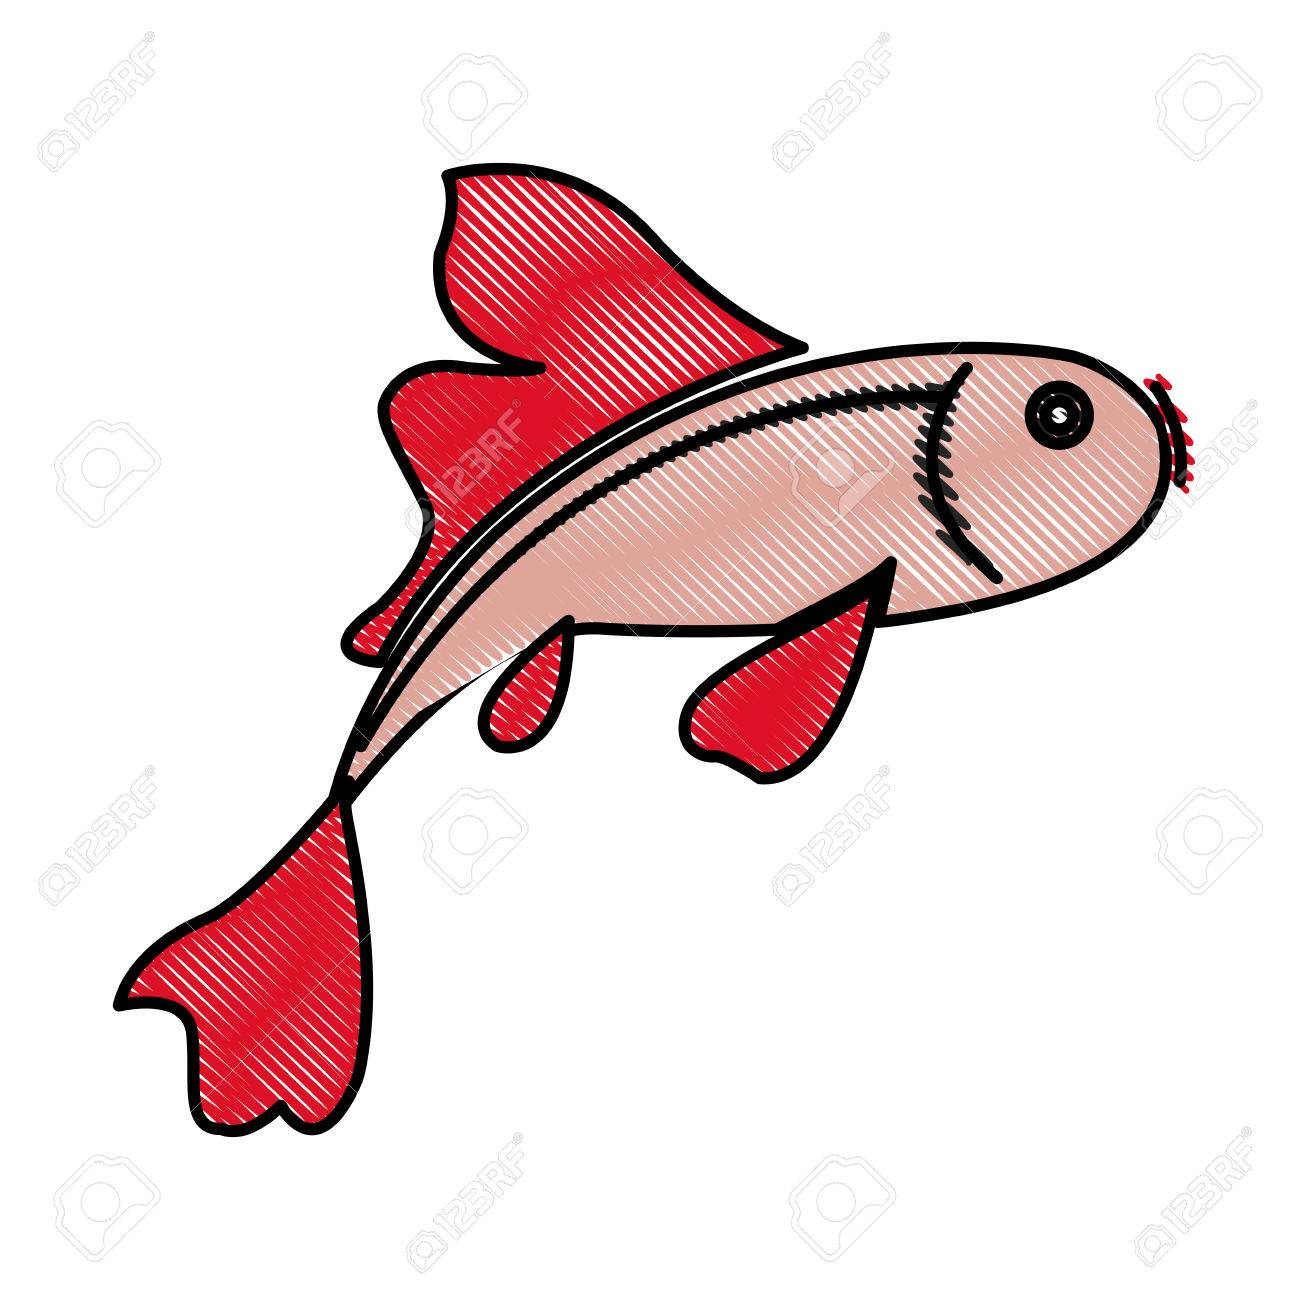 Chinese Fish Drawing at GetDrawings.com | Free for personal use ...